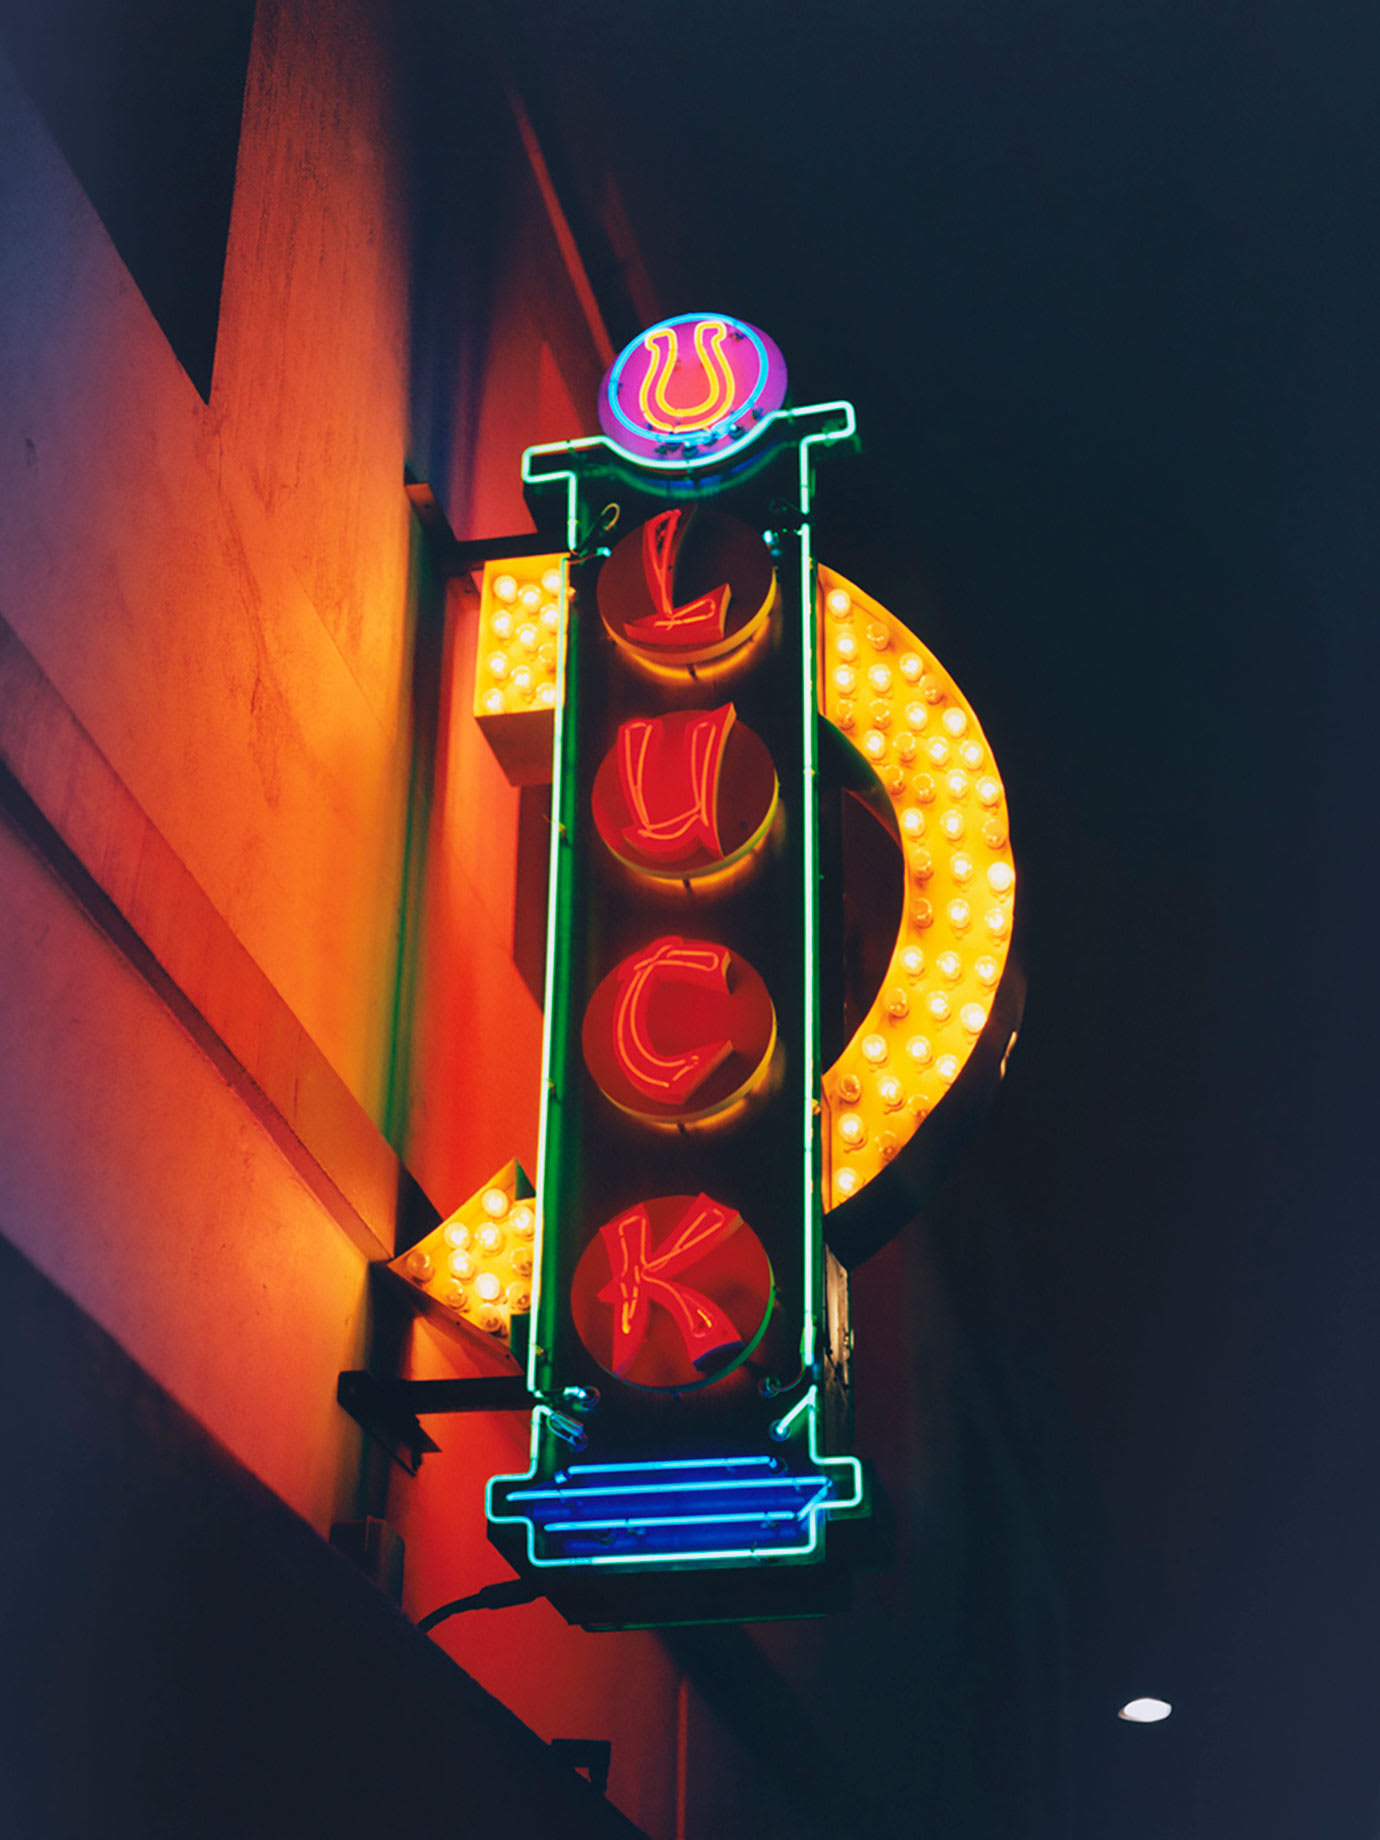 A neon sign with Luck written on it.